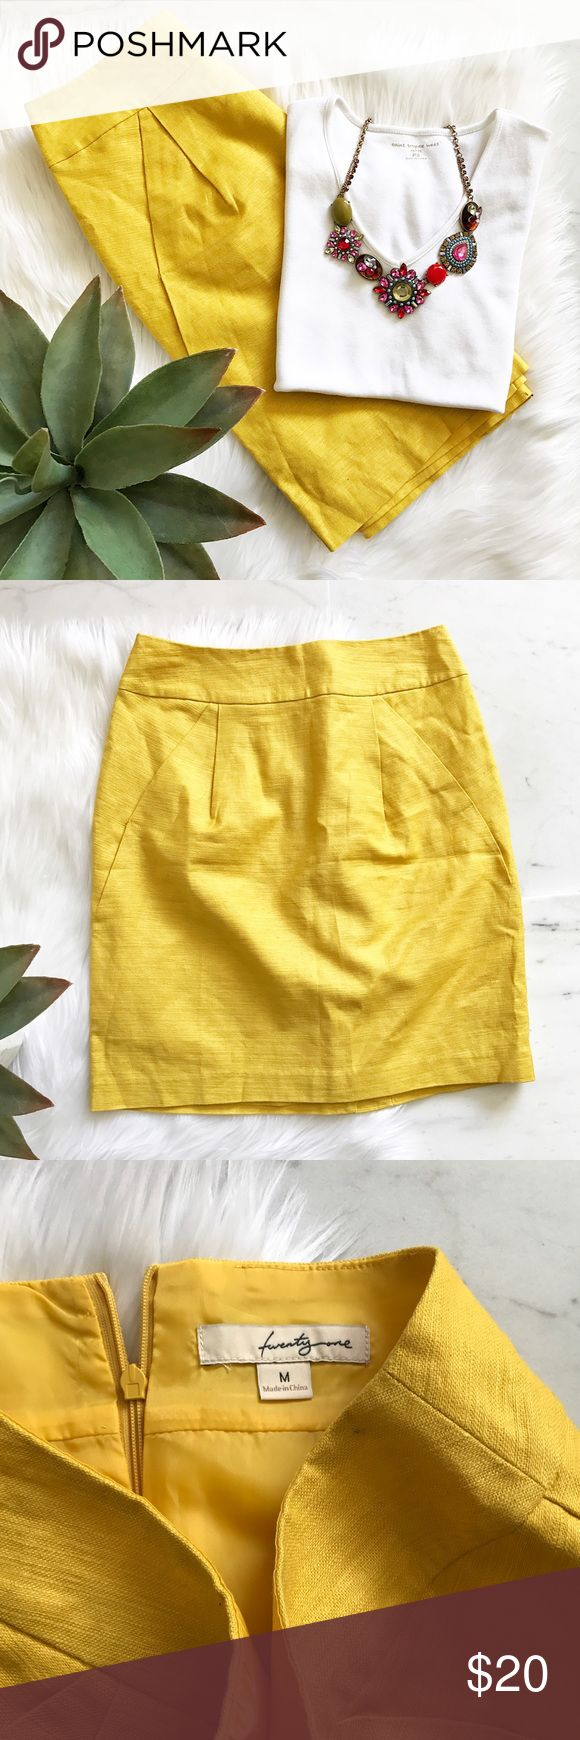 Mustard Yellow Skirt Lovely color! All listed items are from a pet & smoke free home.  Please feel make offers. I have easy access to post office so I will ship asap. Thank you so much! Forever 21 Skirts Mini